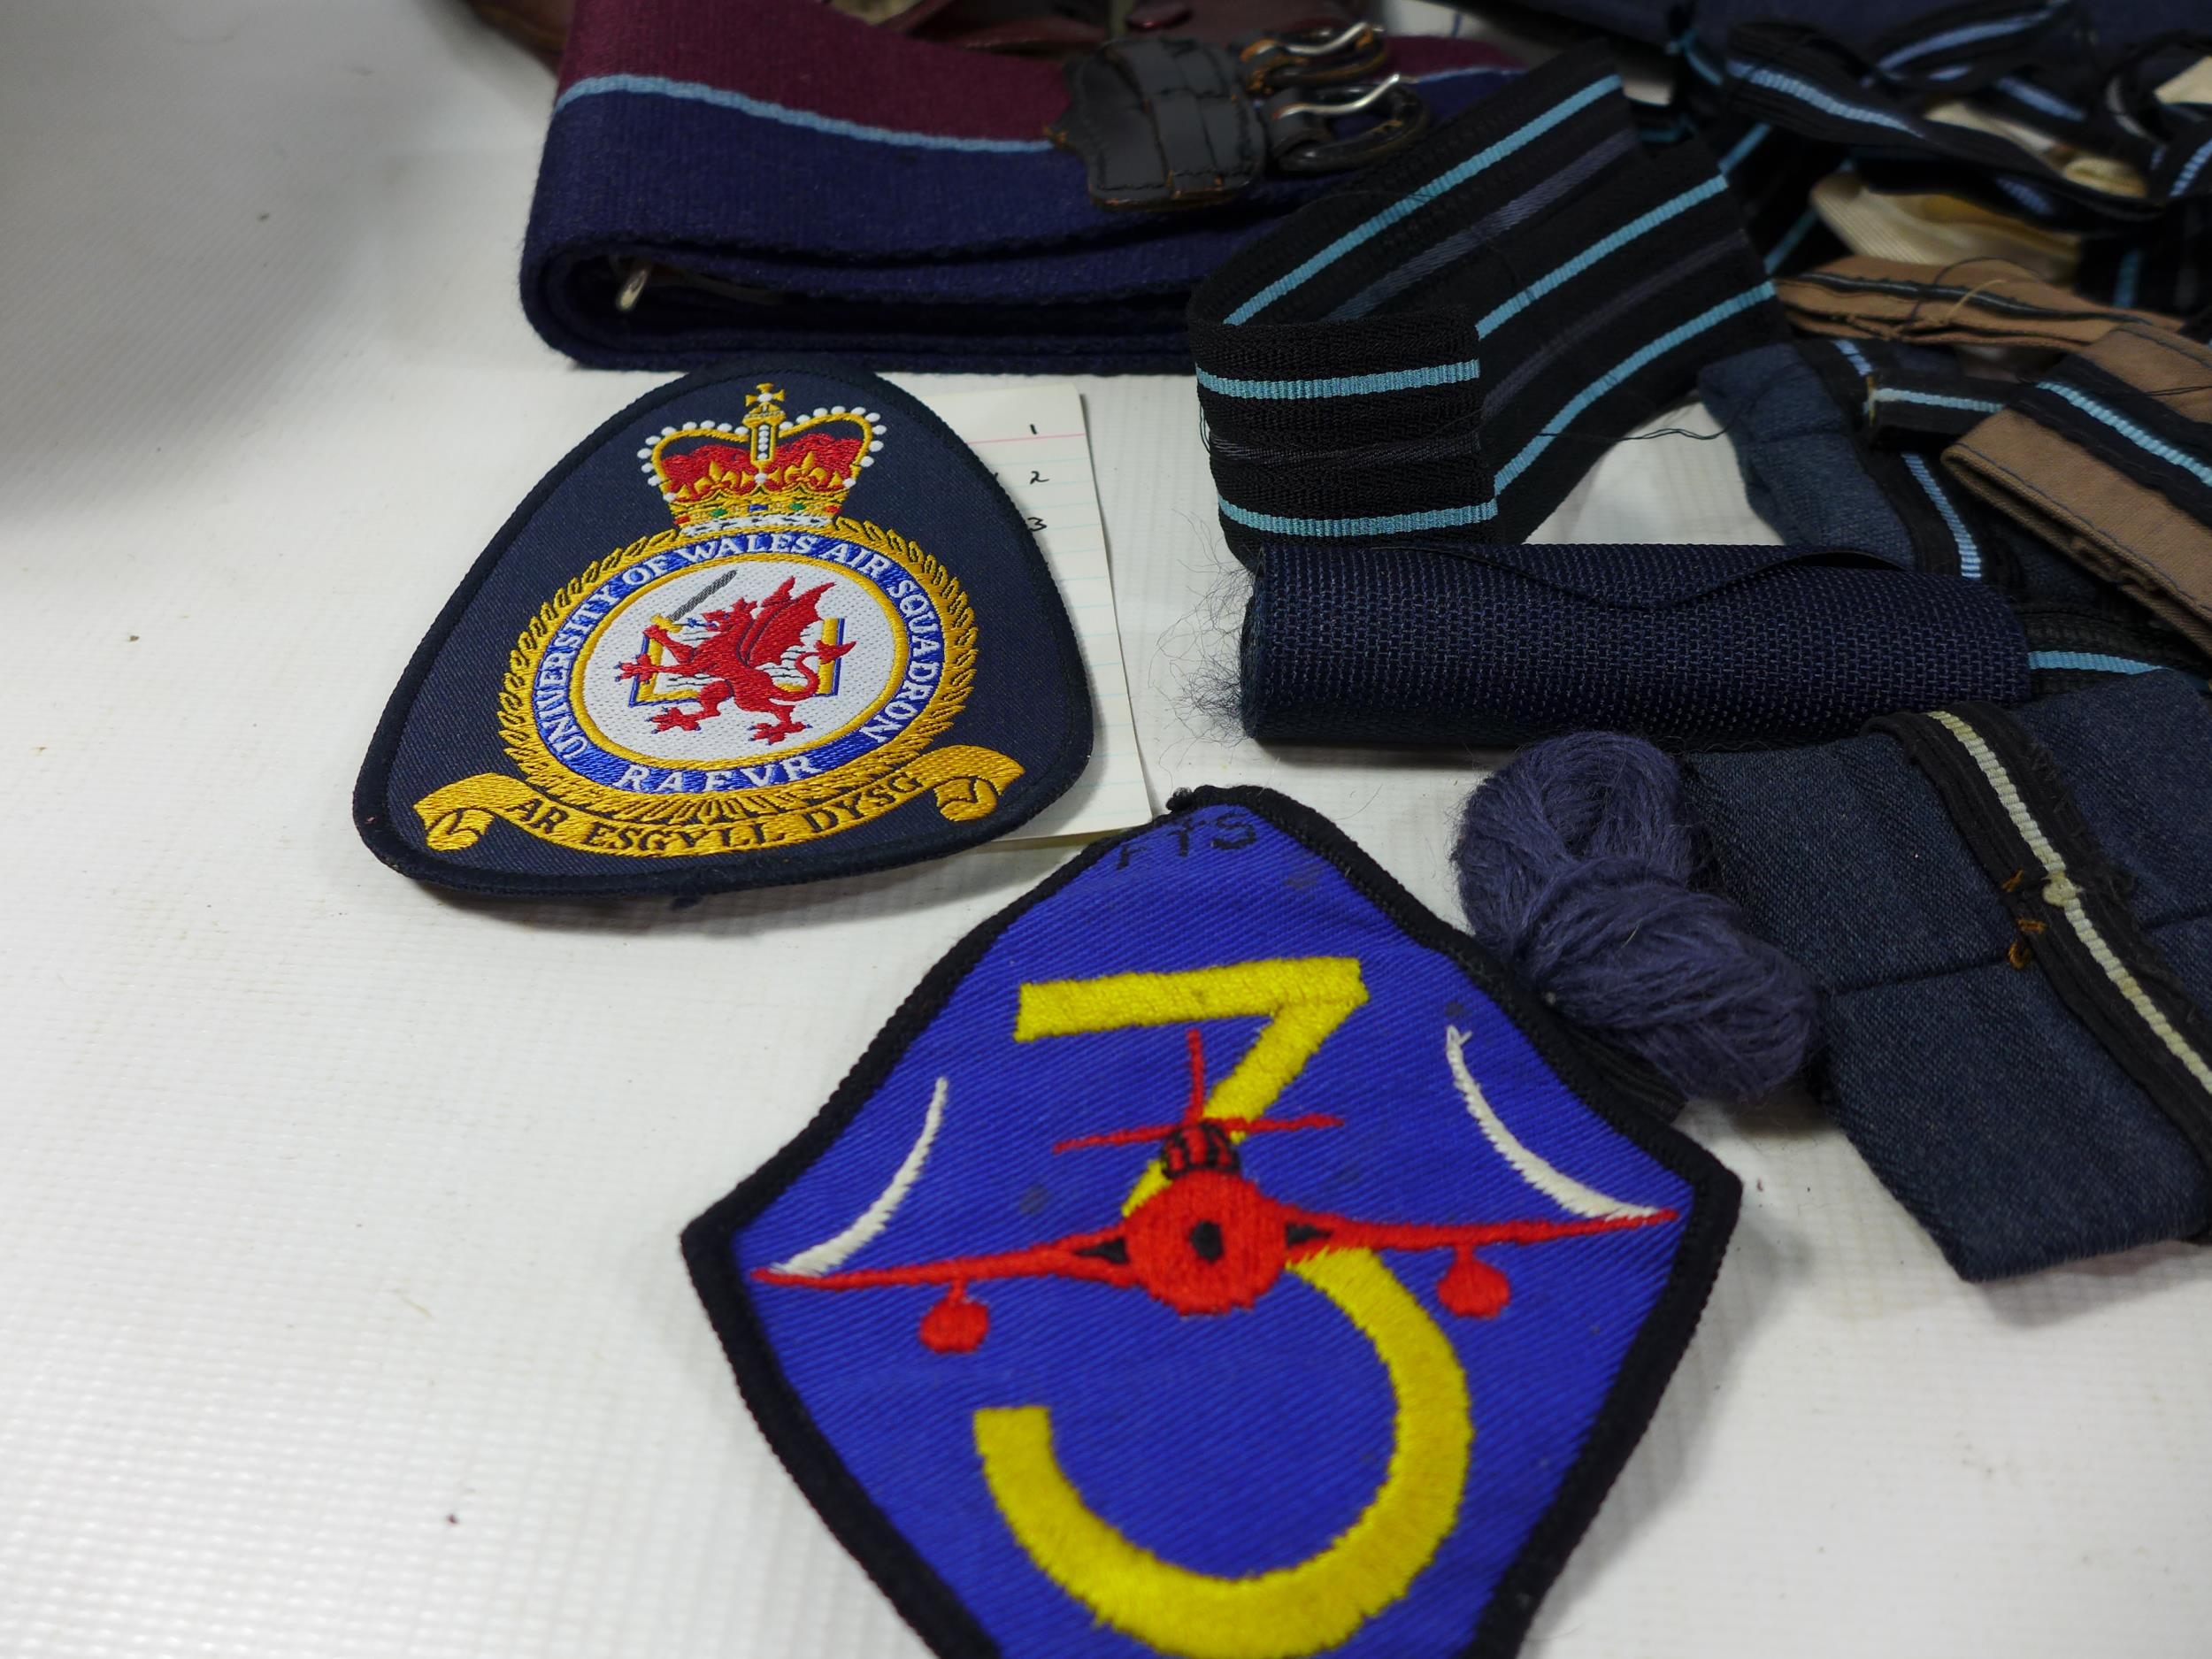 A COLLECTION OF RAF MEMORABILIA COMPRISING CAP, GLOVES, BELTS, FLASHES ETC - Image 3 of 6